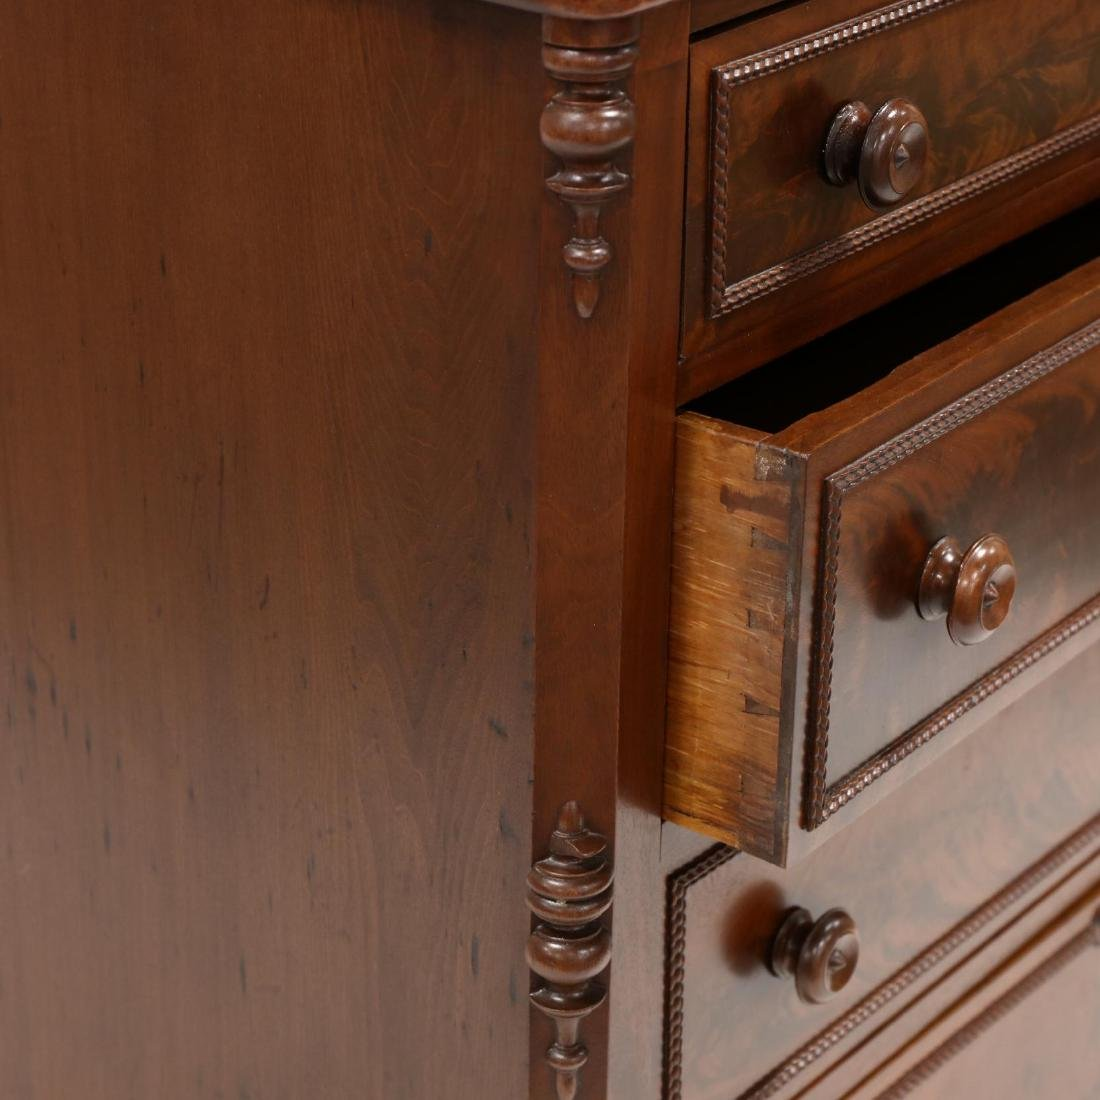 American Classical Mahogany Chest of Drawers - 3